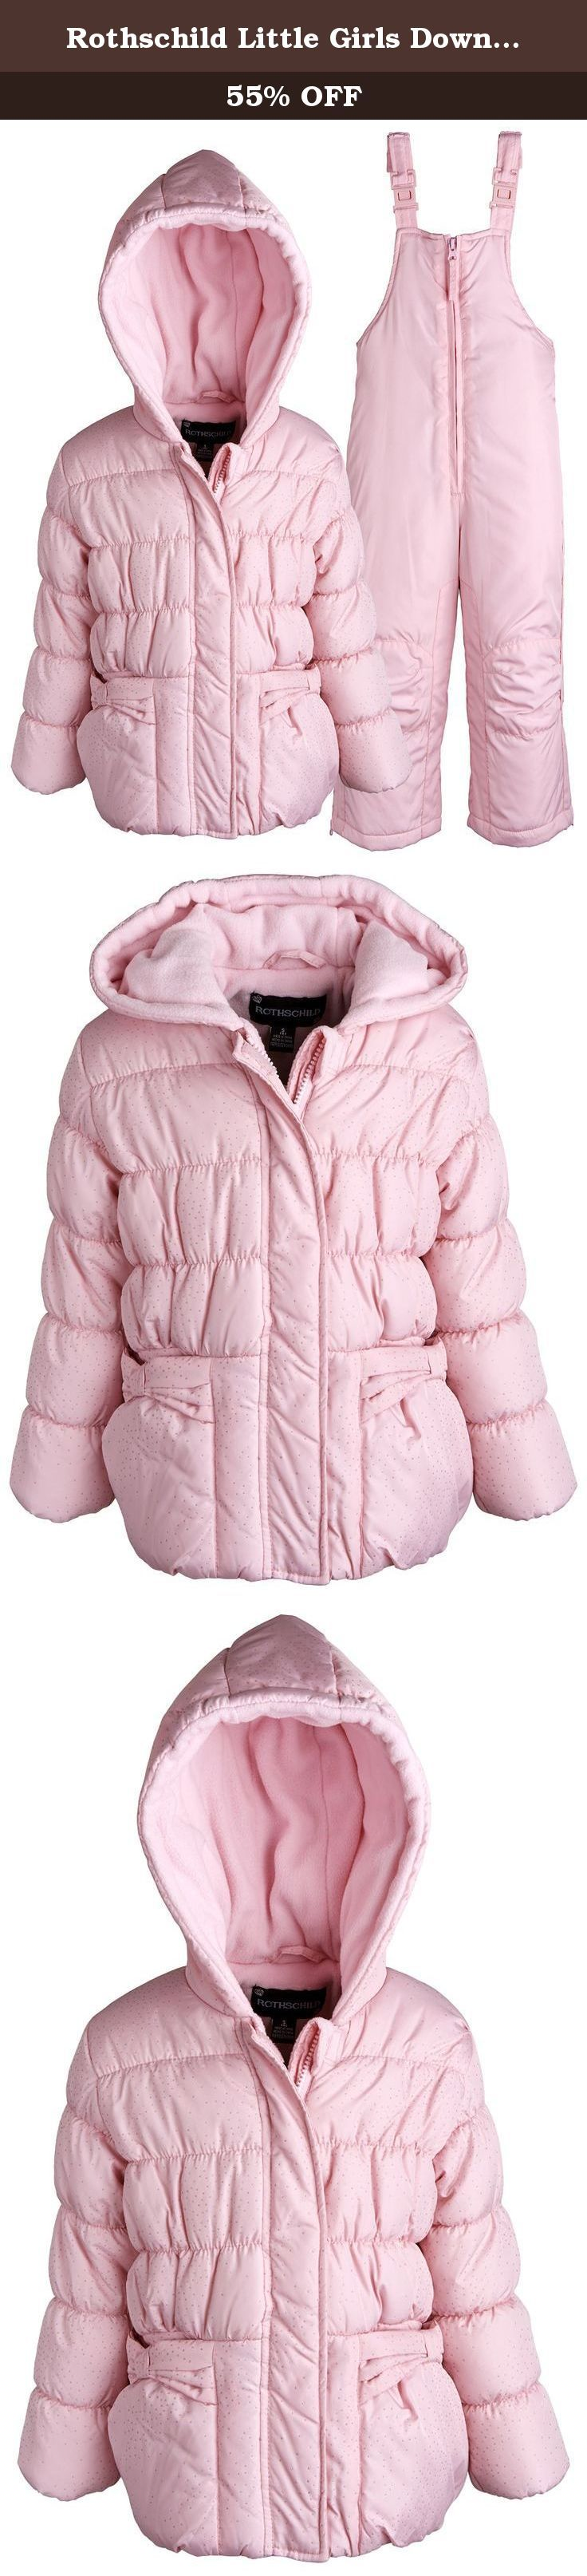 Rothschild Little Girls Down Alternative Bubble Snowsuit Ski Bib and Jacket Set - Petal Pink (size 2T). Warmth and protection by Rothschild. Ultra soft fleece lines the upper body and it is filled with thick down alternative material. This well designed 2 piece snowsuit will definitely help her cope those extreme weathers. Jacket is enhanced with bows and sparkles. Reinforced knee patches. Available in sizes 12M to 6X (for other size ranges, please see our Amazon storefront).